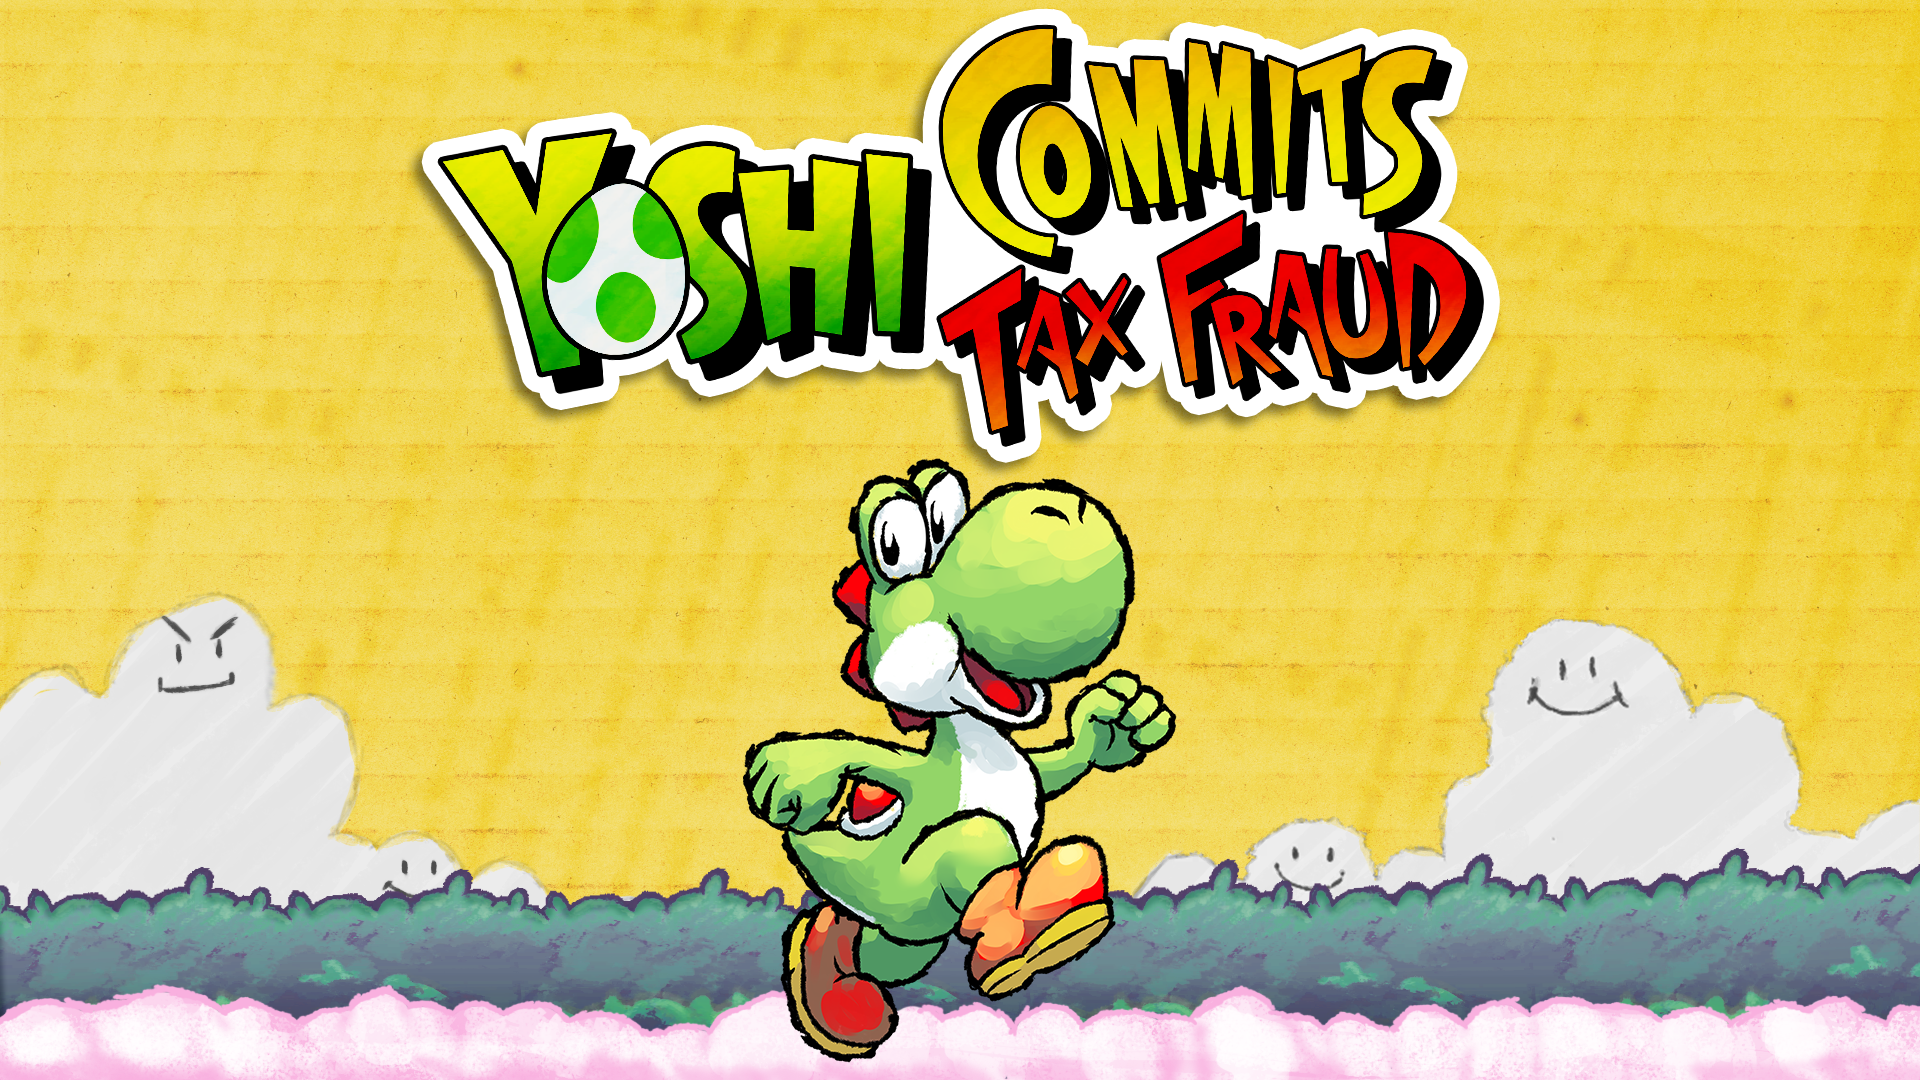 Up on Mt. Money-Laundering - Yoshi Commits Tax Fraud